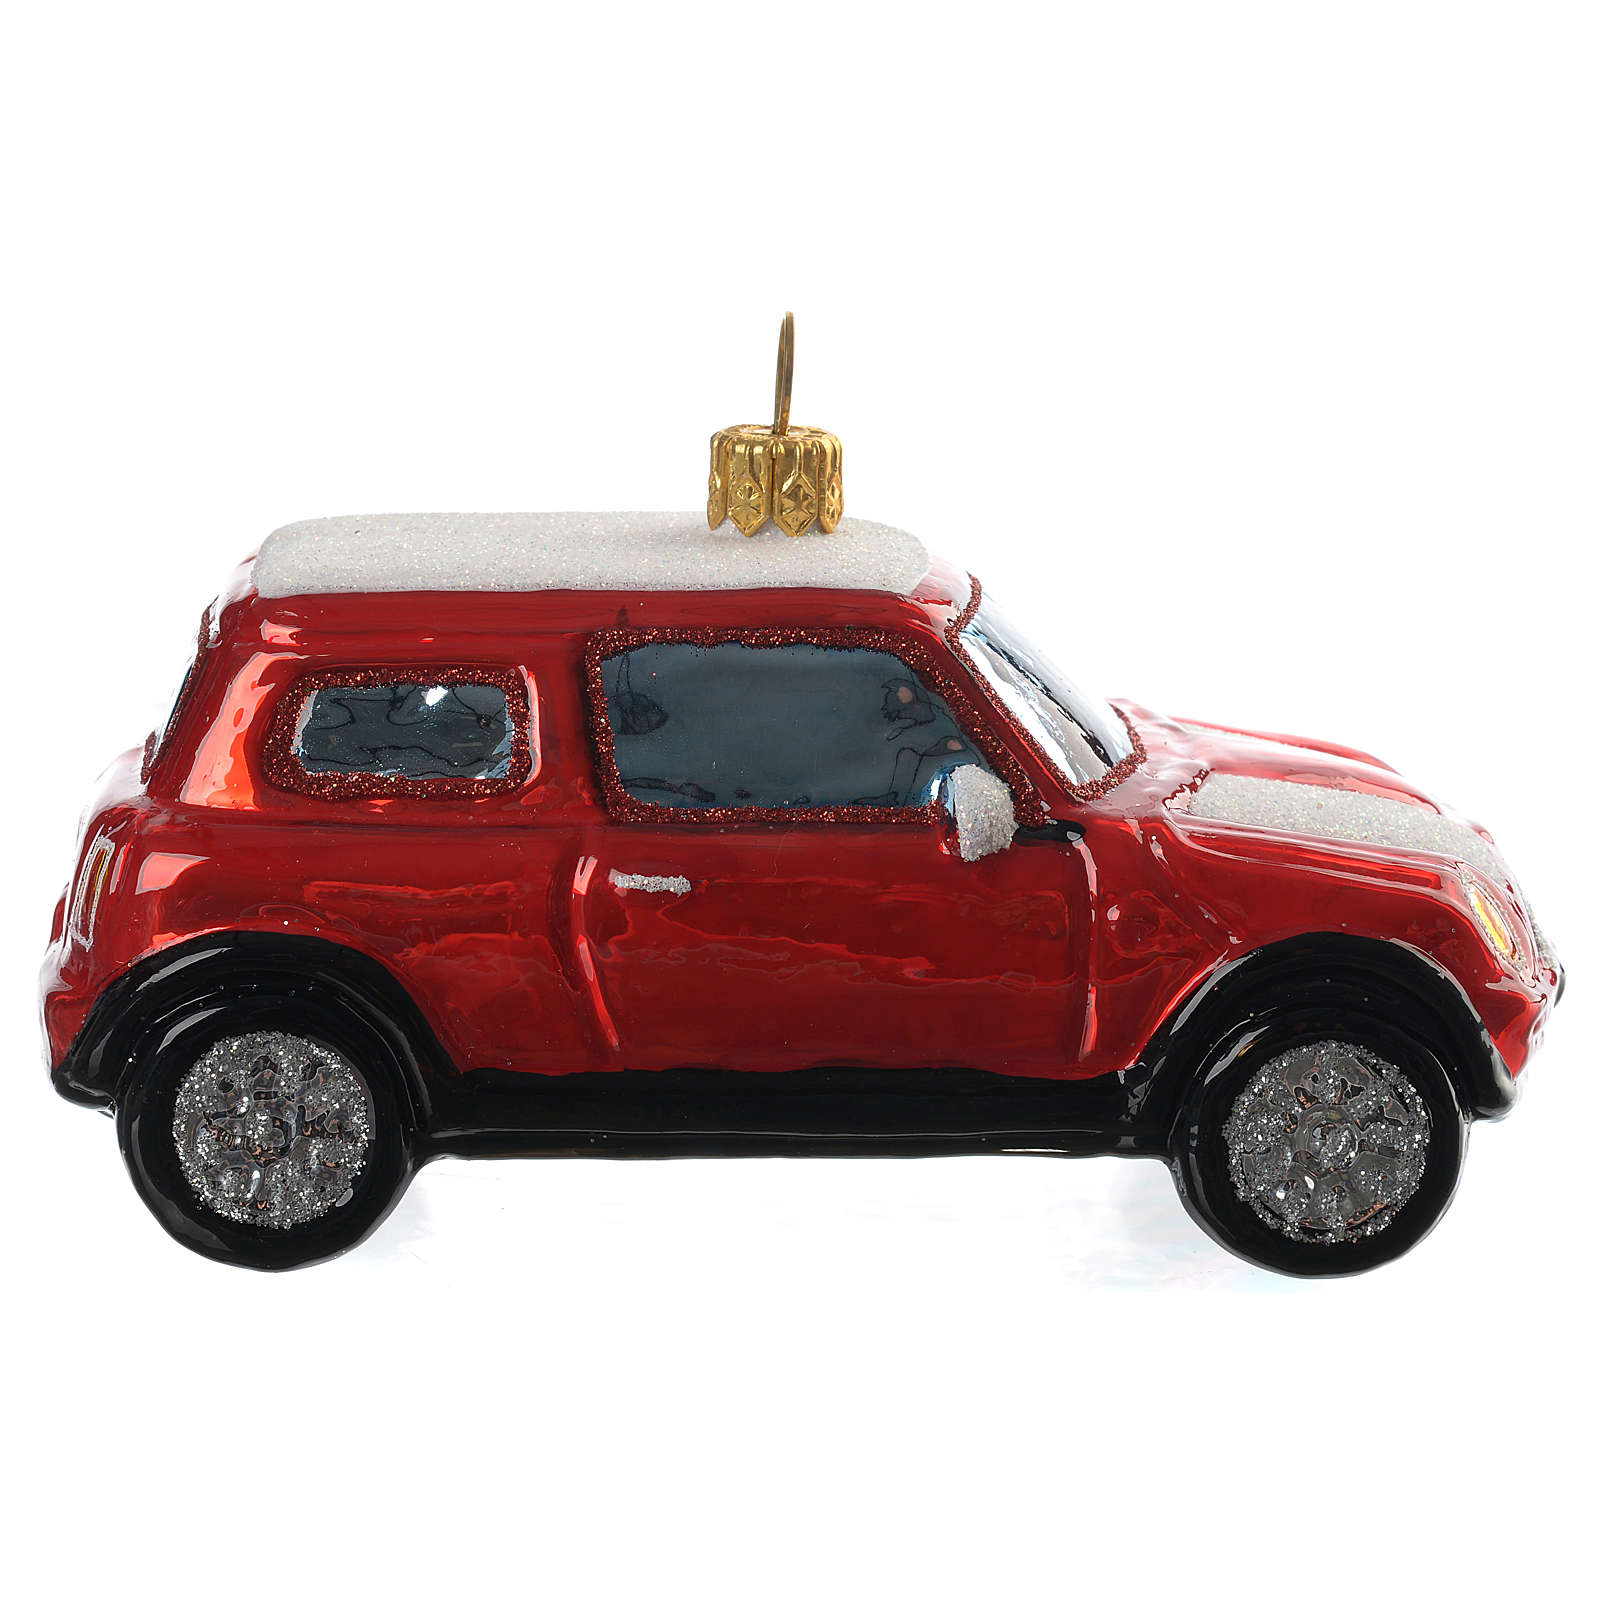 Blown glass Christmas ornament, red Mini Cooper 4